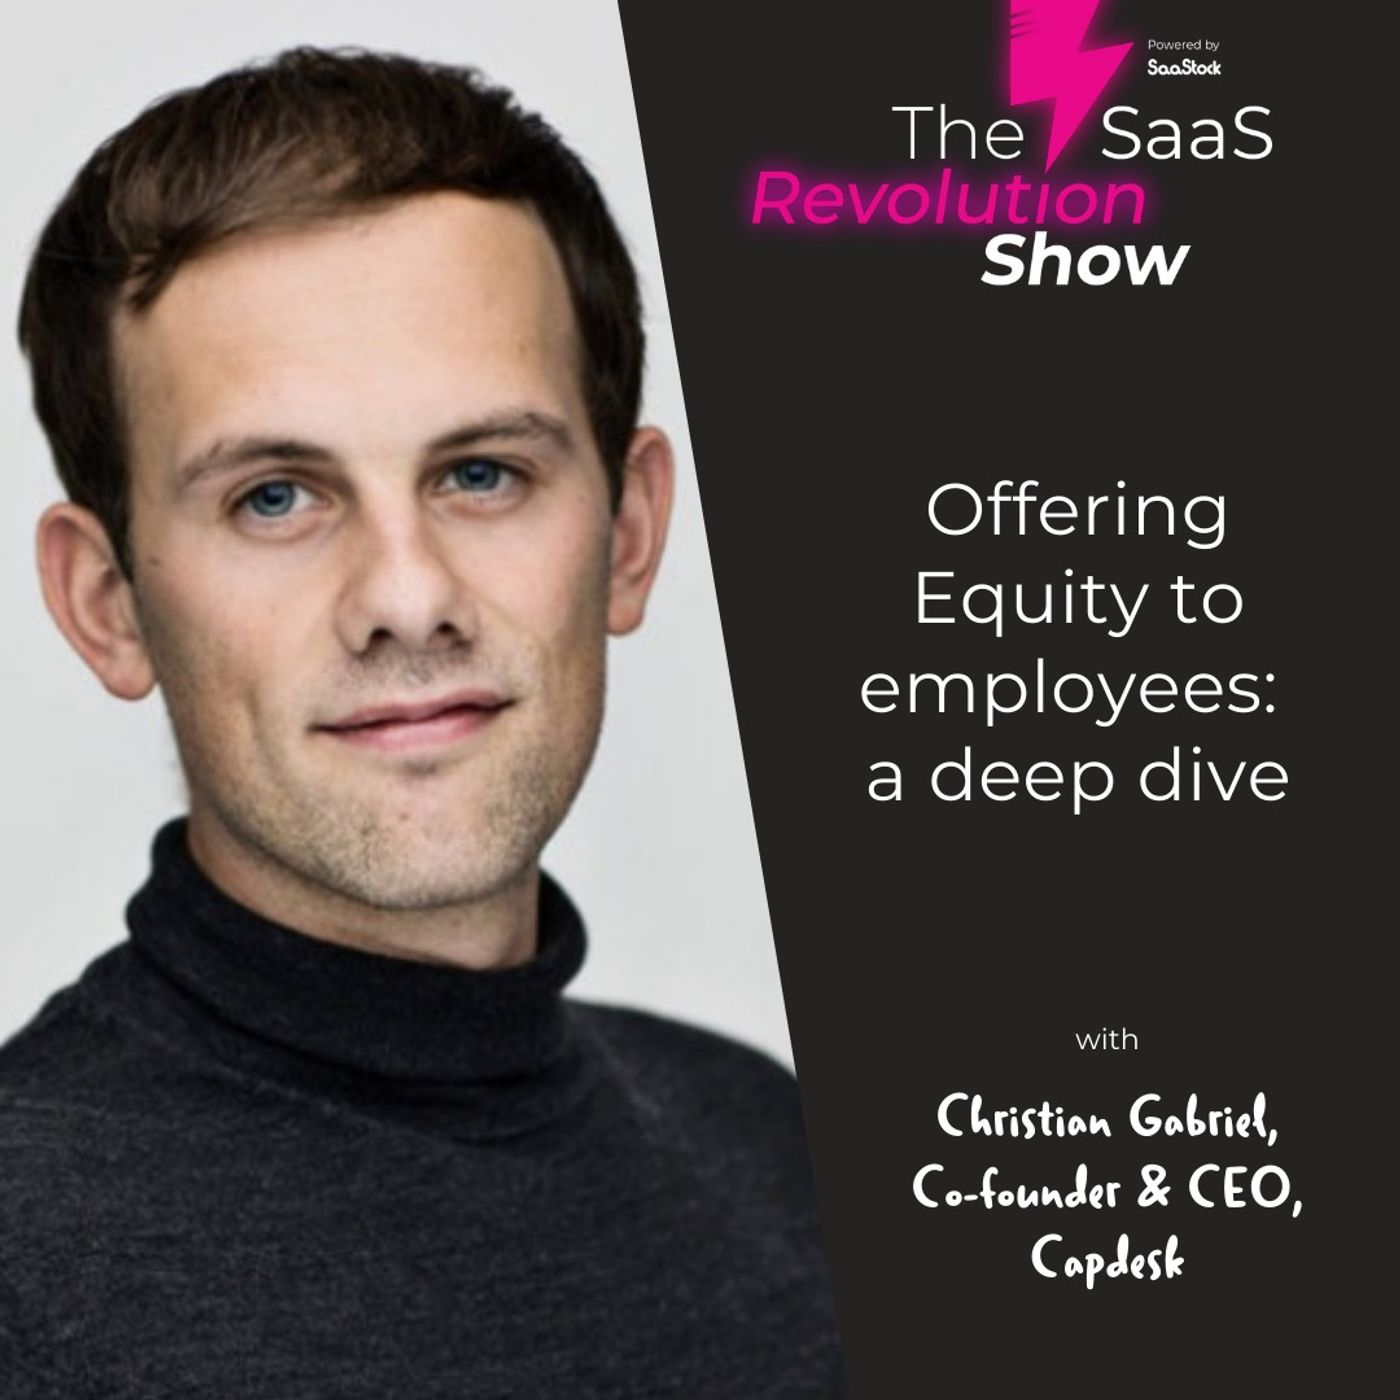 Offering Equity to employees: a deep dive with Christian Gabriel, Co-founder & CEO of Capdesk